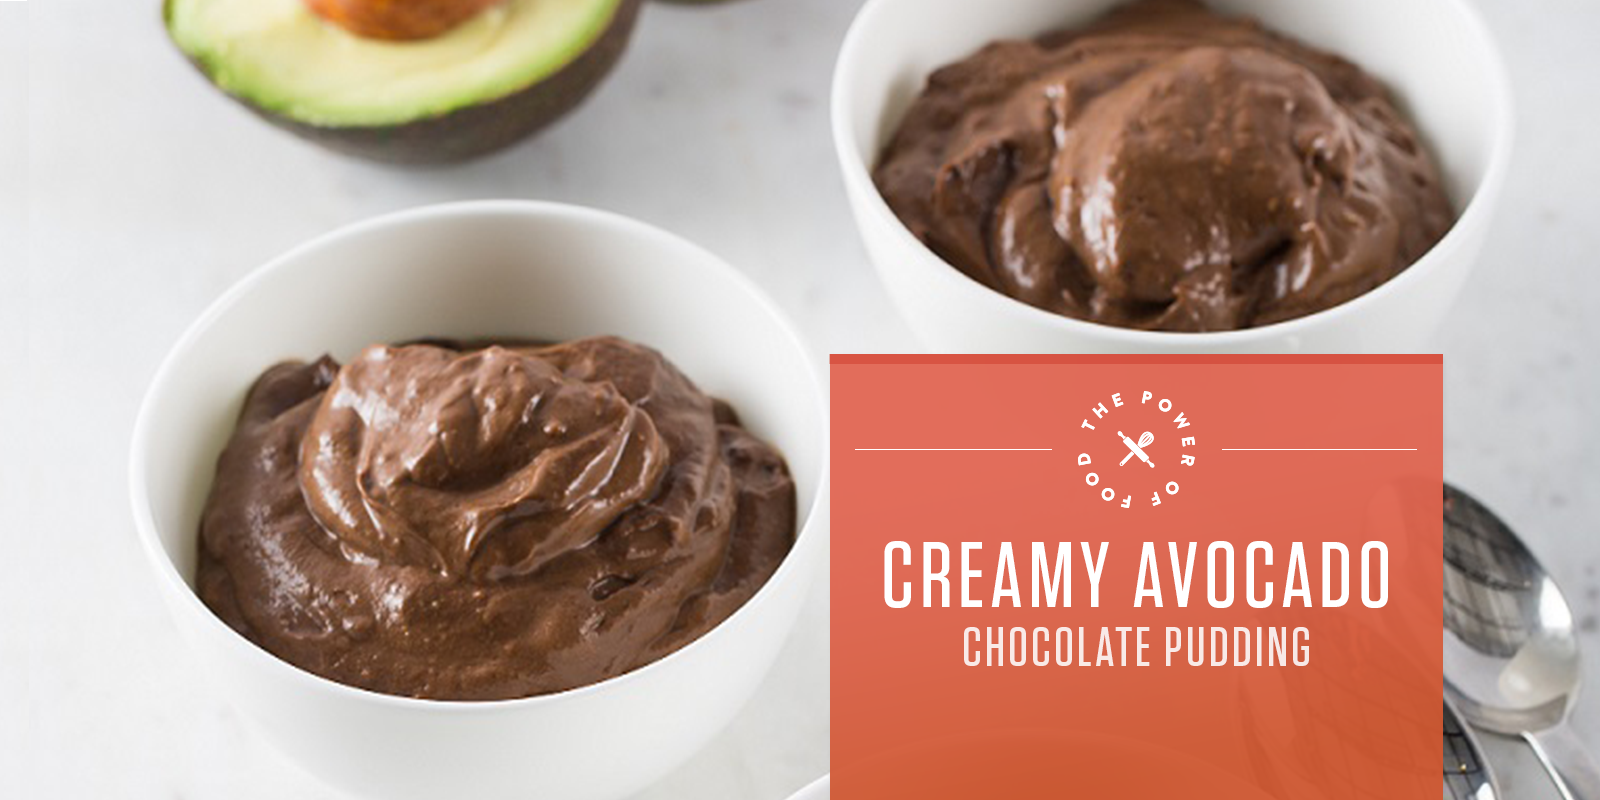 AvocadoChocolatePudding_Social